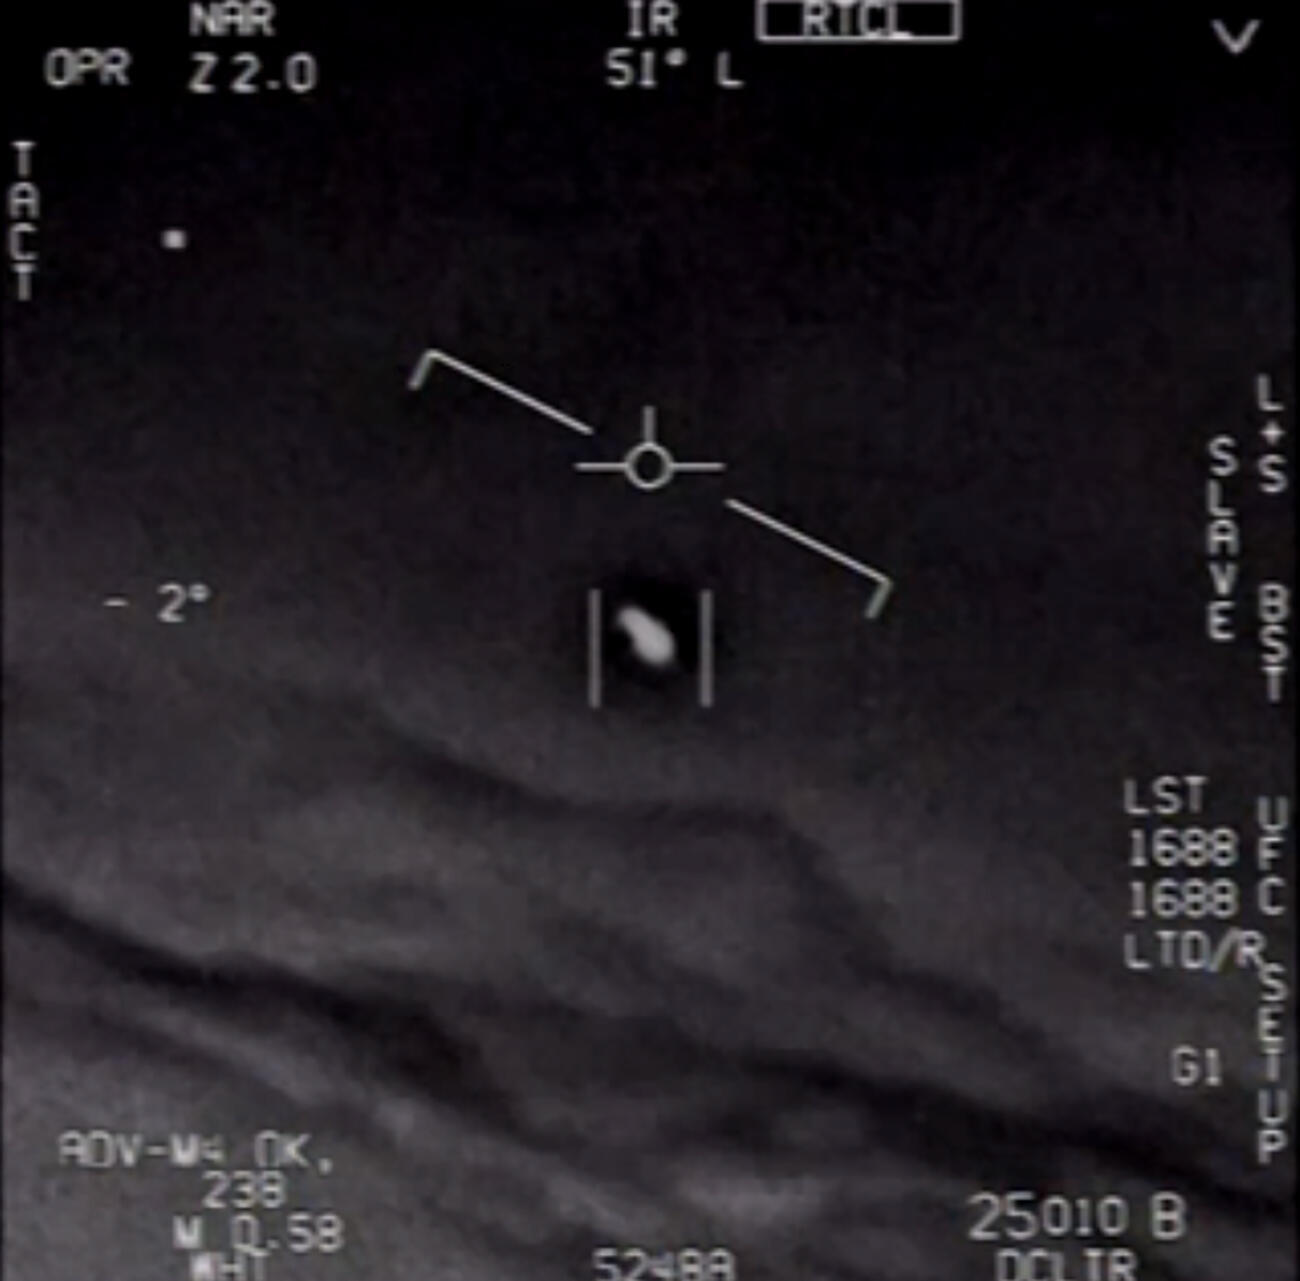 The Pentagon in April officially released three videos taken by US Navy pilots showing mid-air encounters with what appear to be UFOs